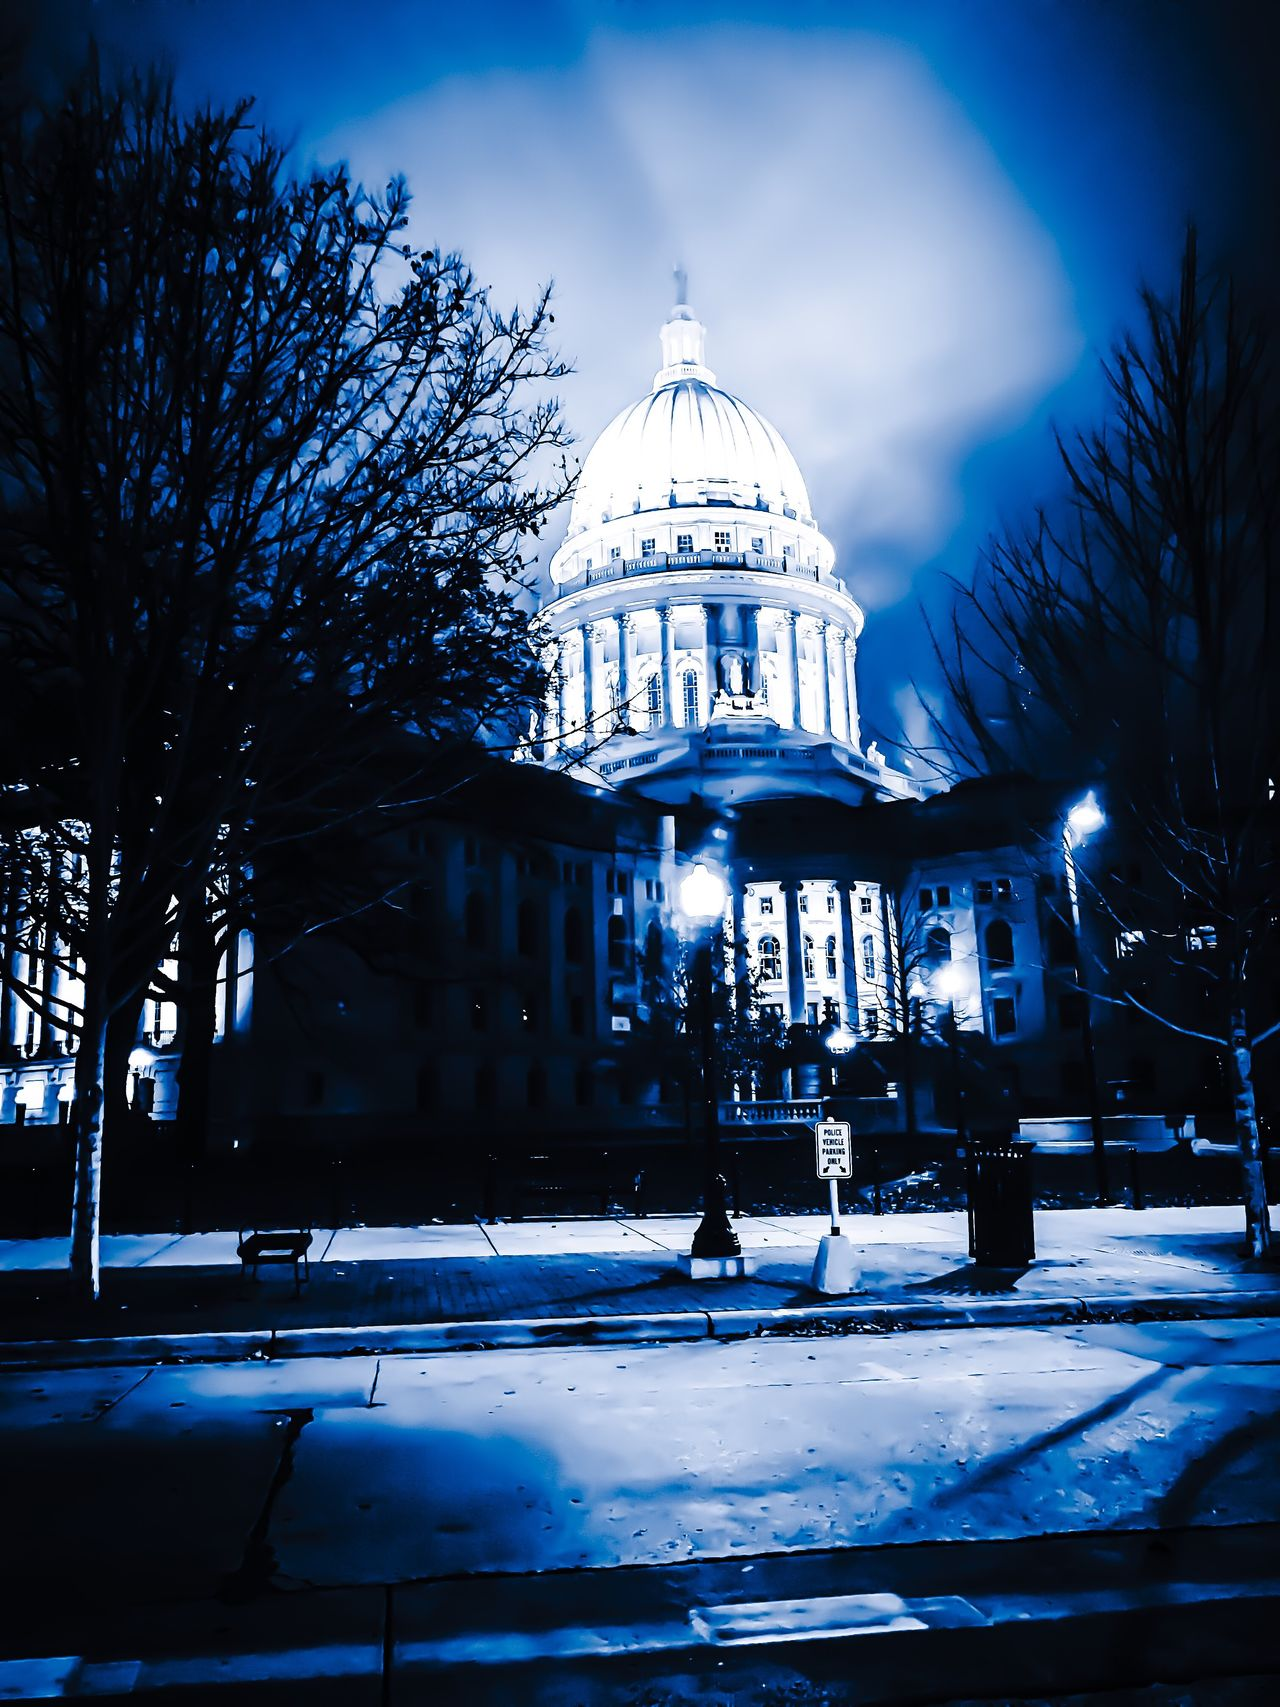 My Year My View Madison Wisconsin Capital City Onevision Nightlights Overcast But Beautiful OneDayOnePic Hometown Scenery